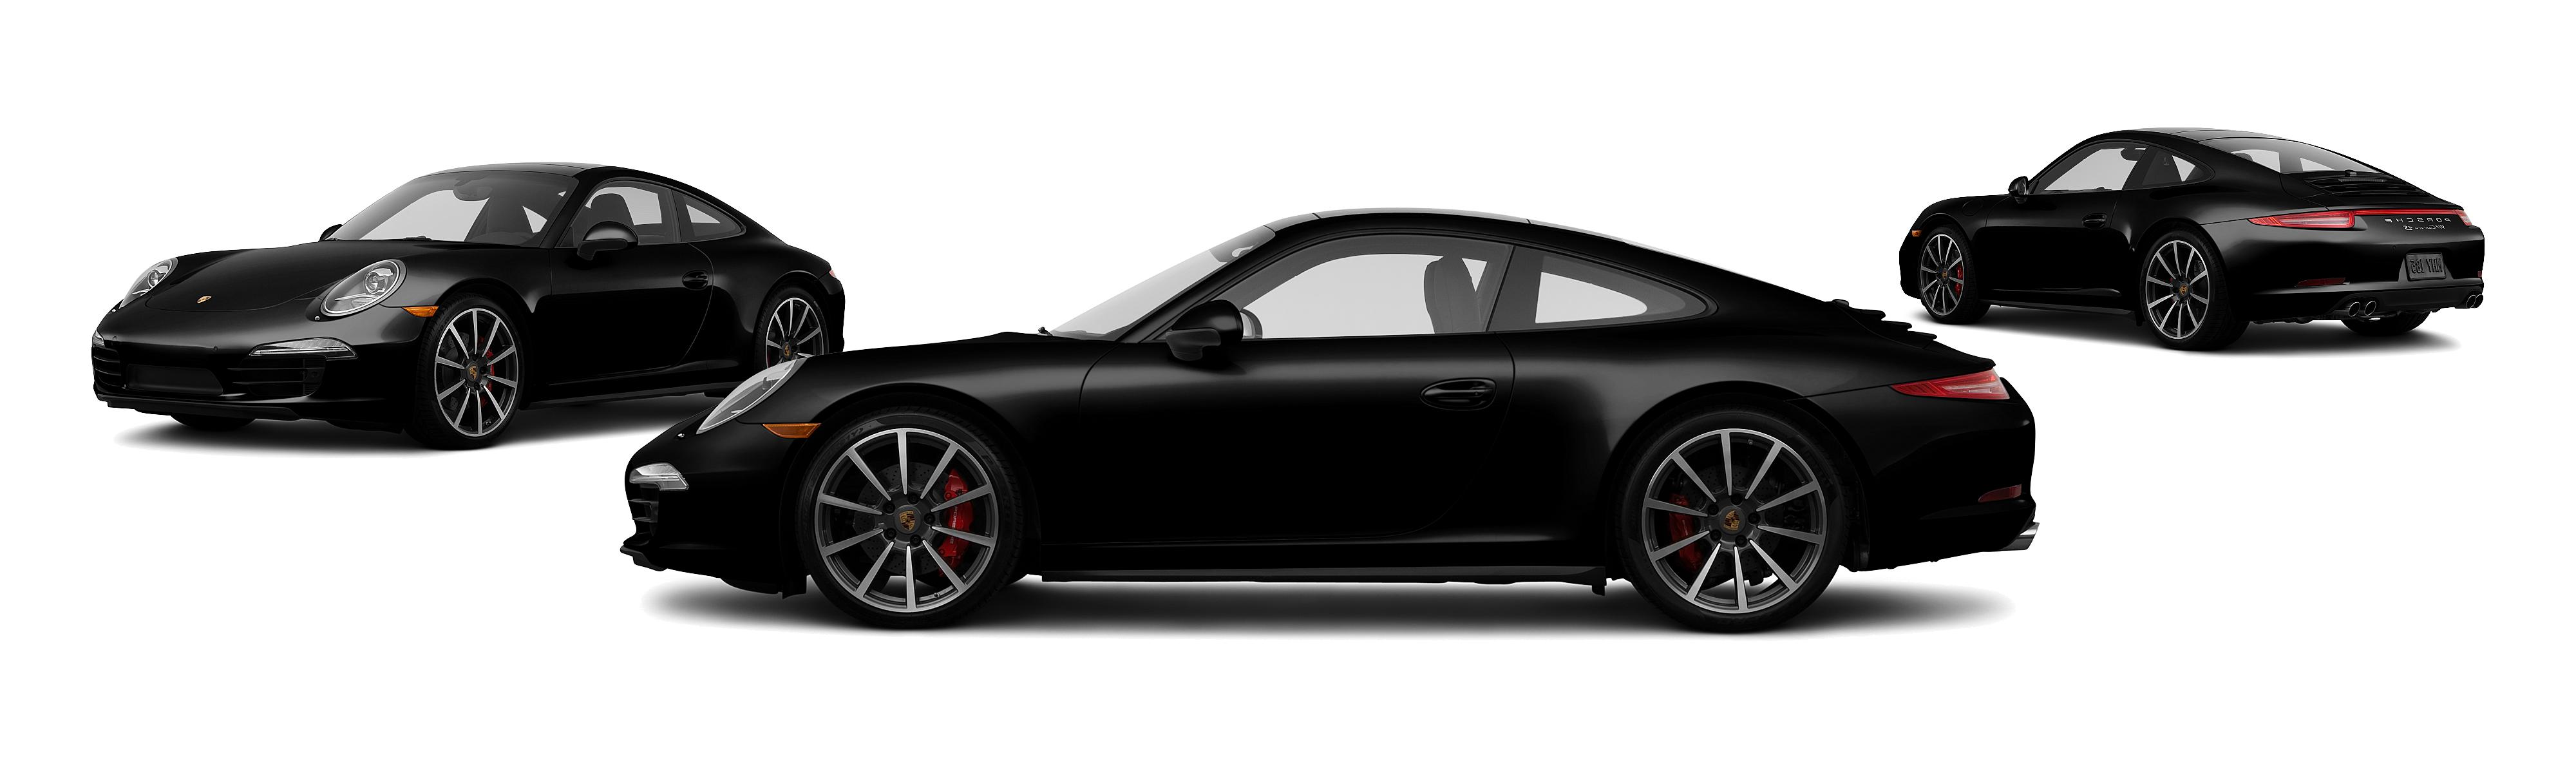 2014 porsche 911 awd carrera 4s 2dr coupe research groovecar